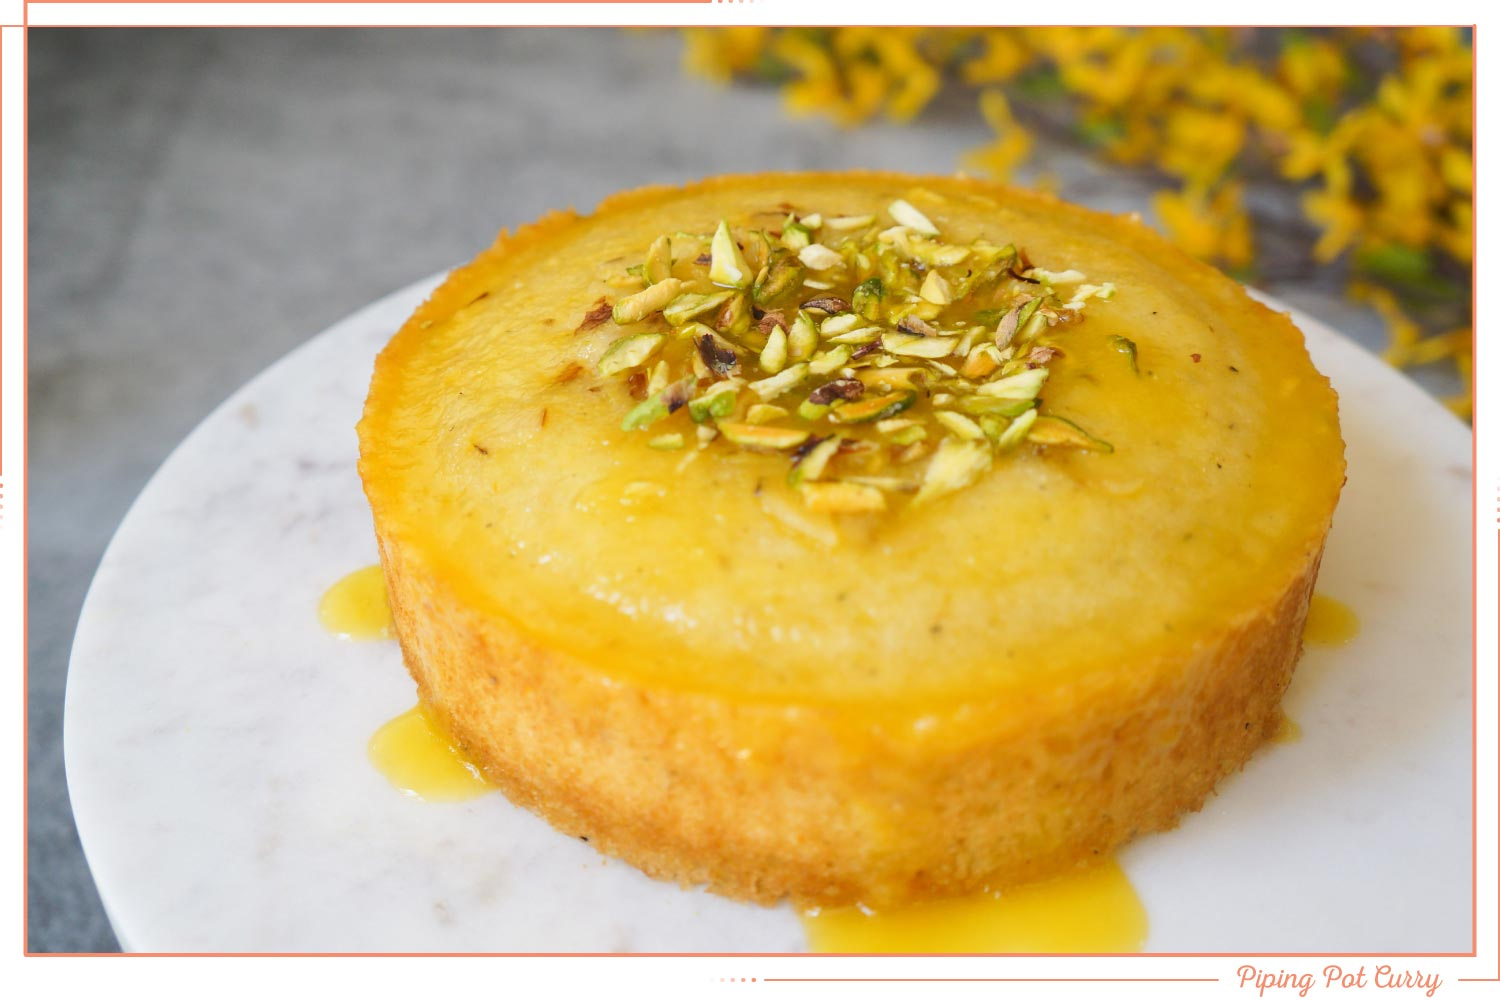 orange semolina cake instant pot dessert recipe